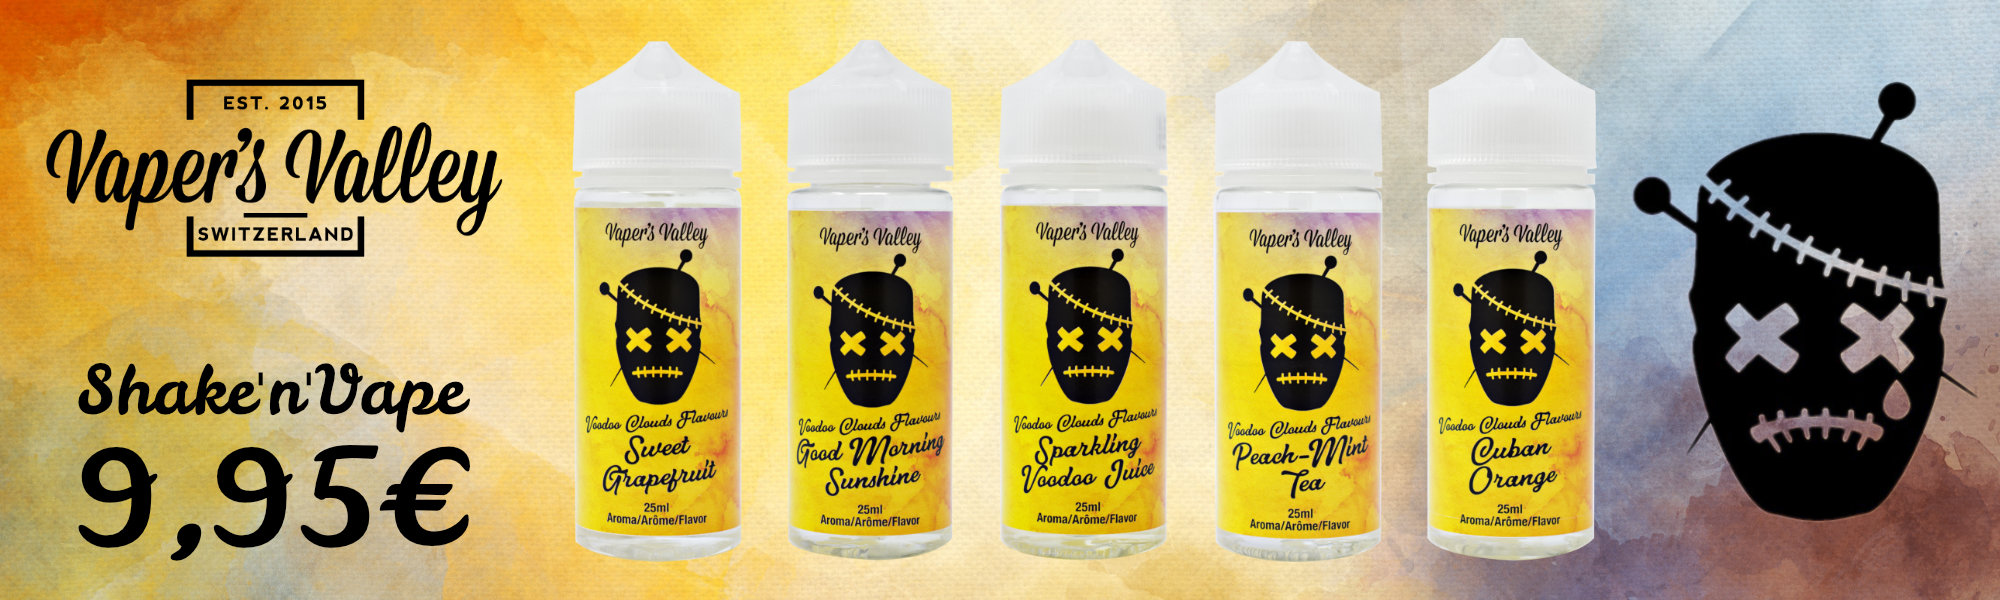 Vaper's Valley Voodoo Clouds